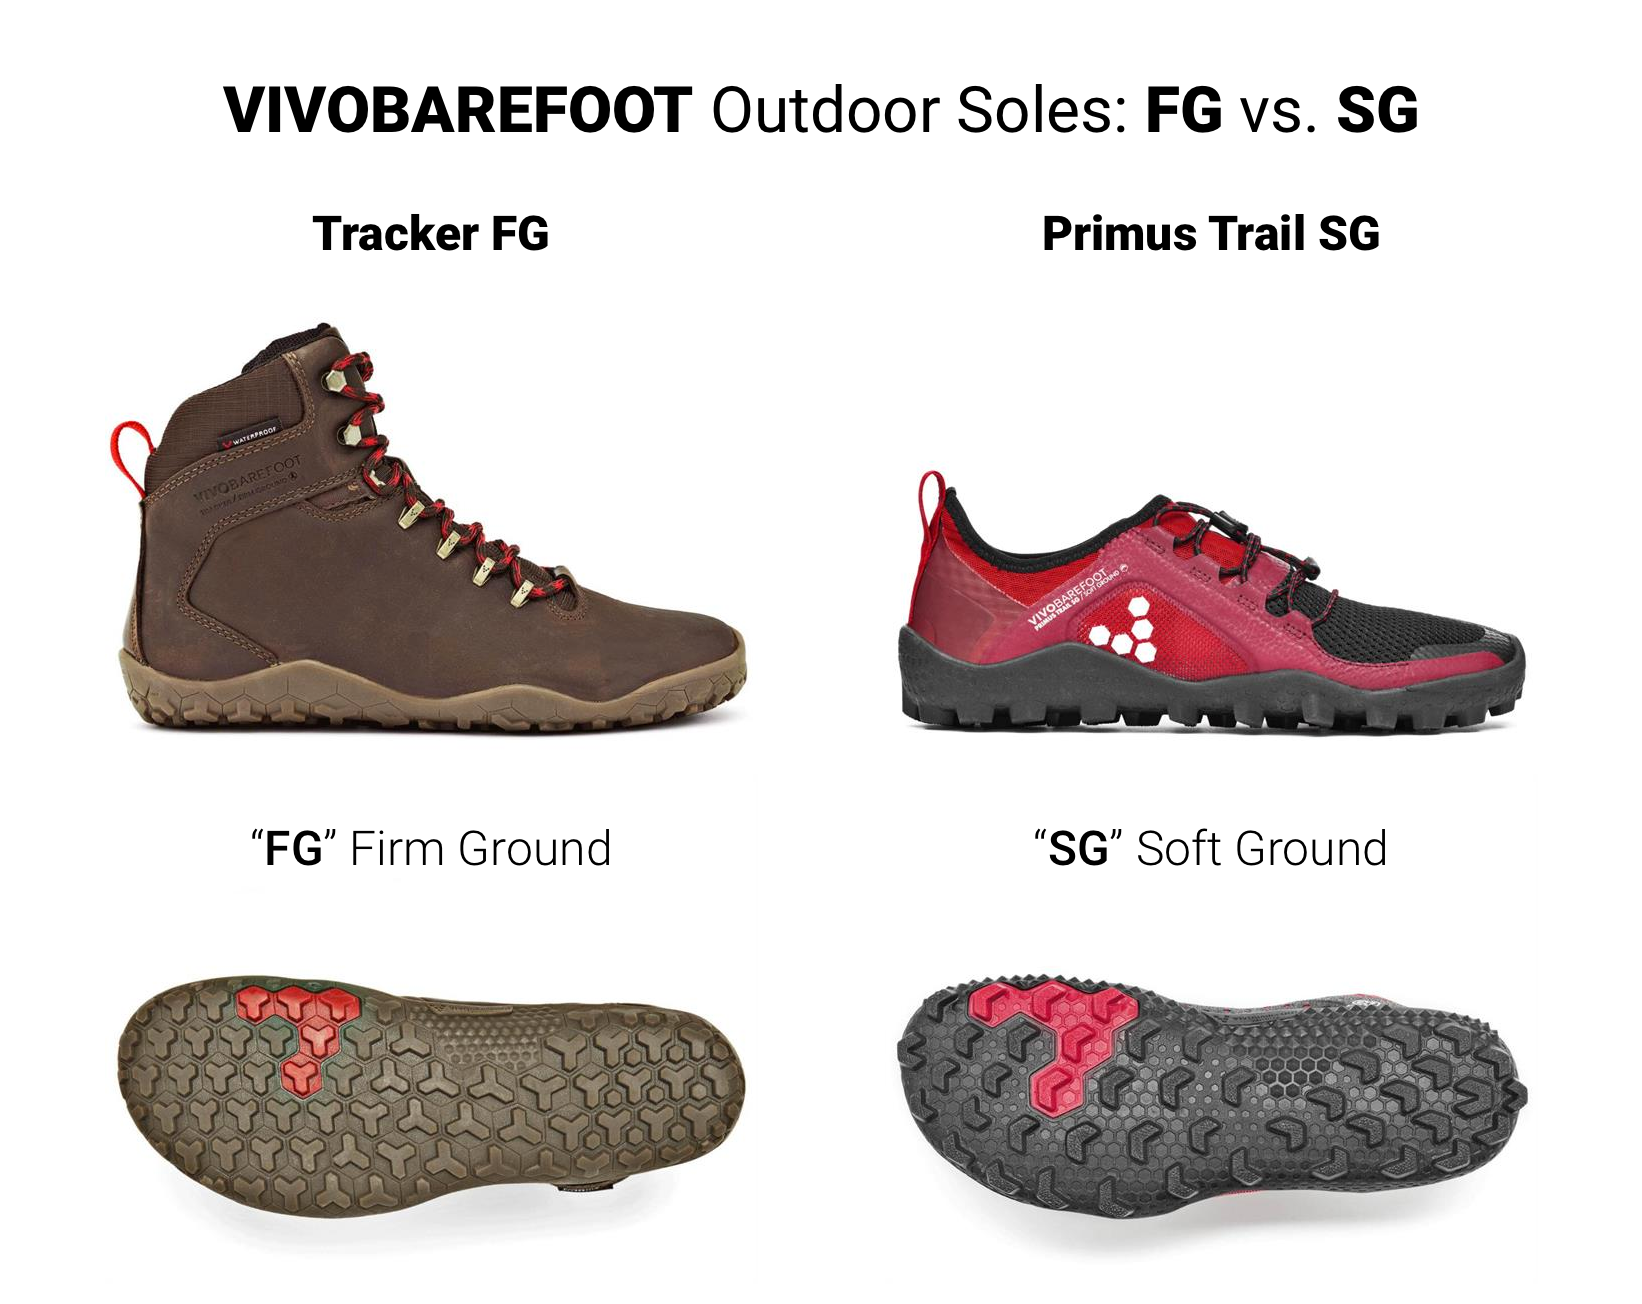 """You can see how the lugs are fewer, taller, and larger on the """"soft ground"""" compared to the """"firm ground."""" This makes a pretty significant difference in how these shoes feel. FG also goes a long way to making the Tracker's just fine for everyday wear."""